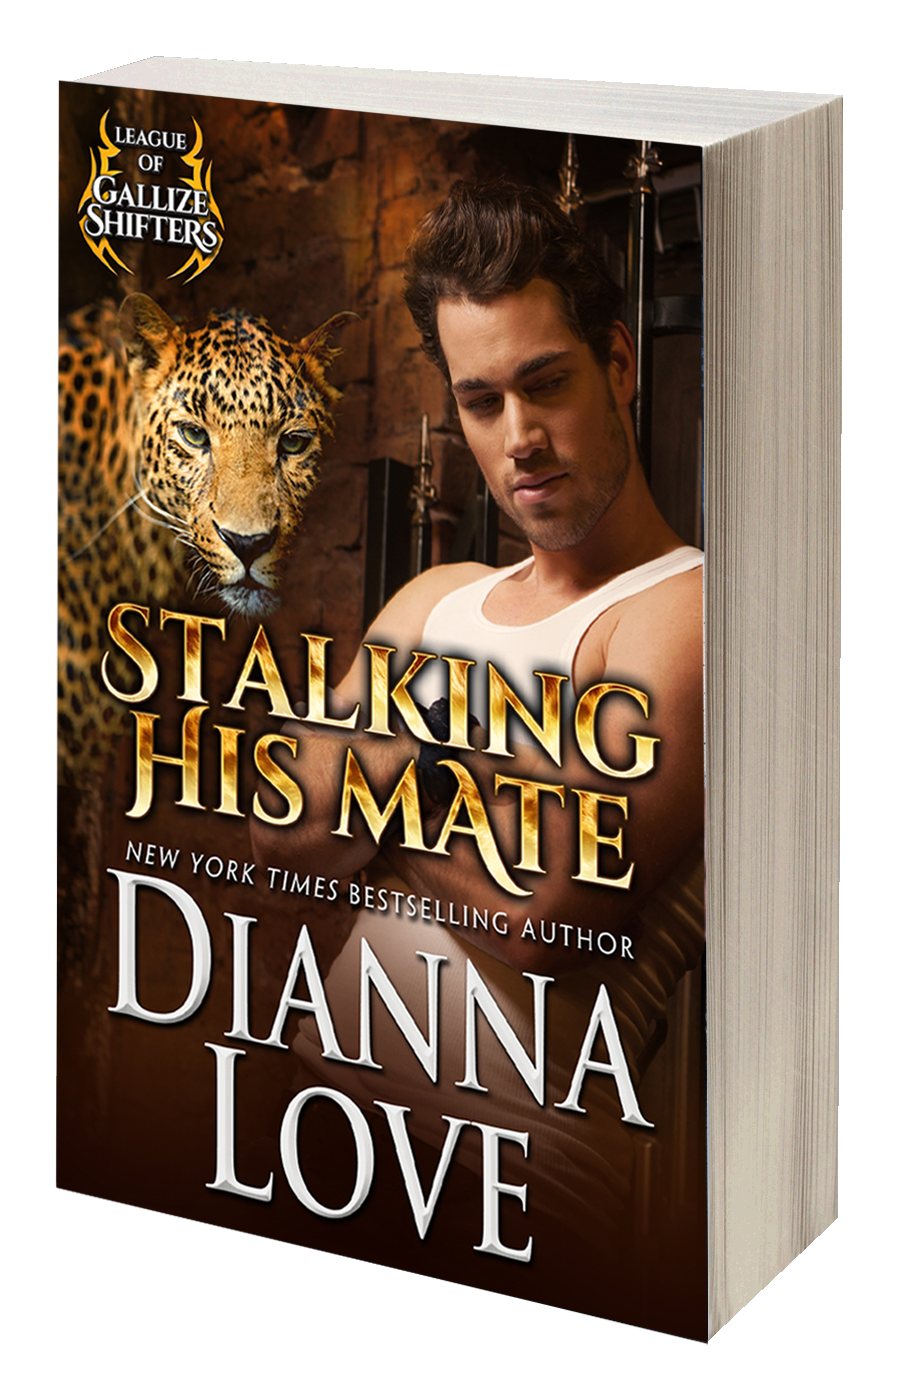 Order a signed copy of Stalking His Mate: League of Gallize Shifters book 3